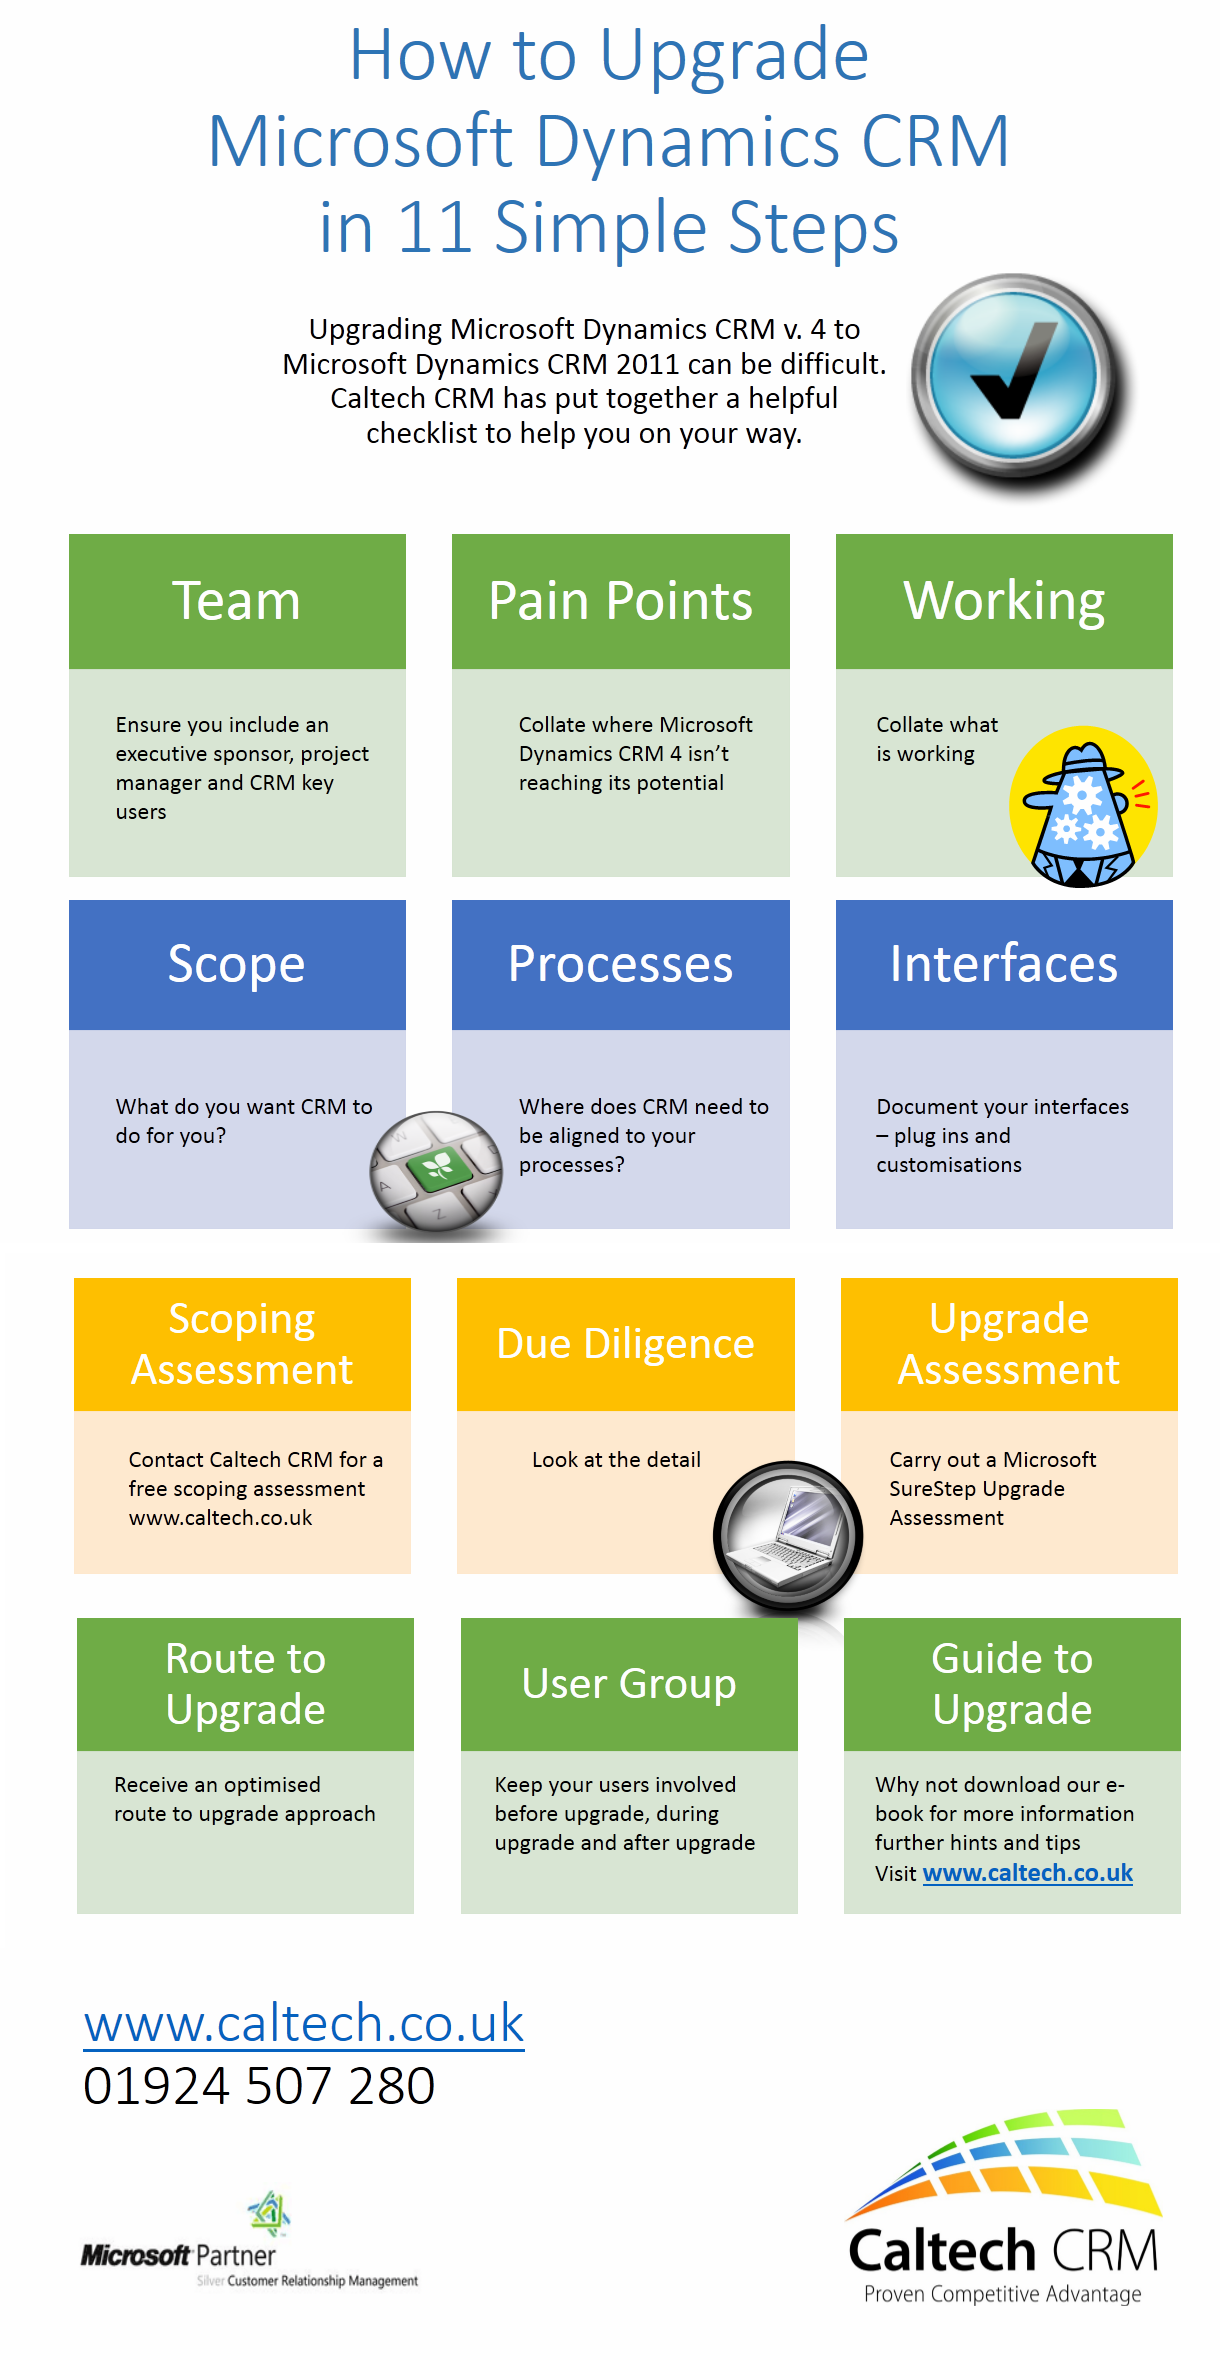 Upgrading MS CRM infographic